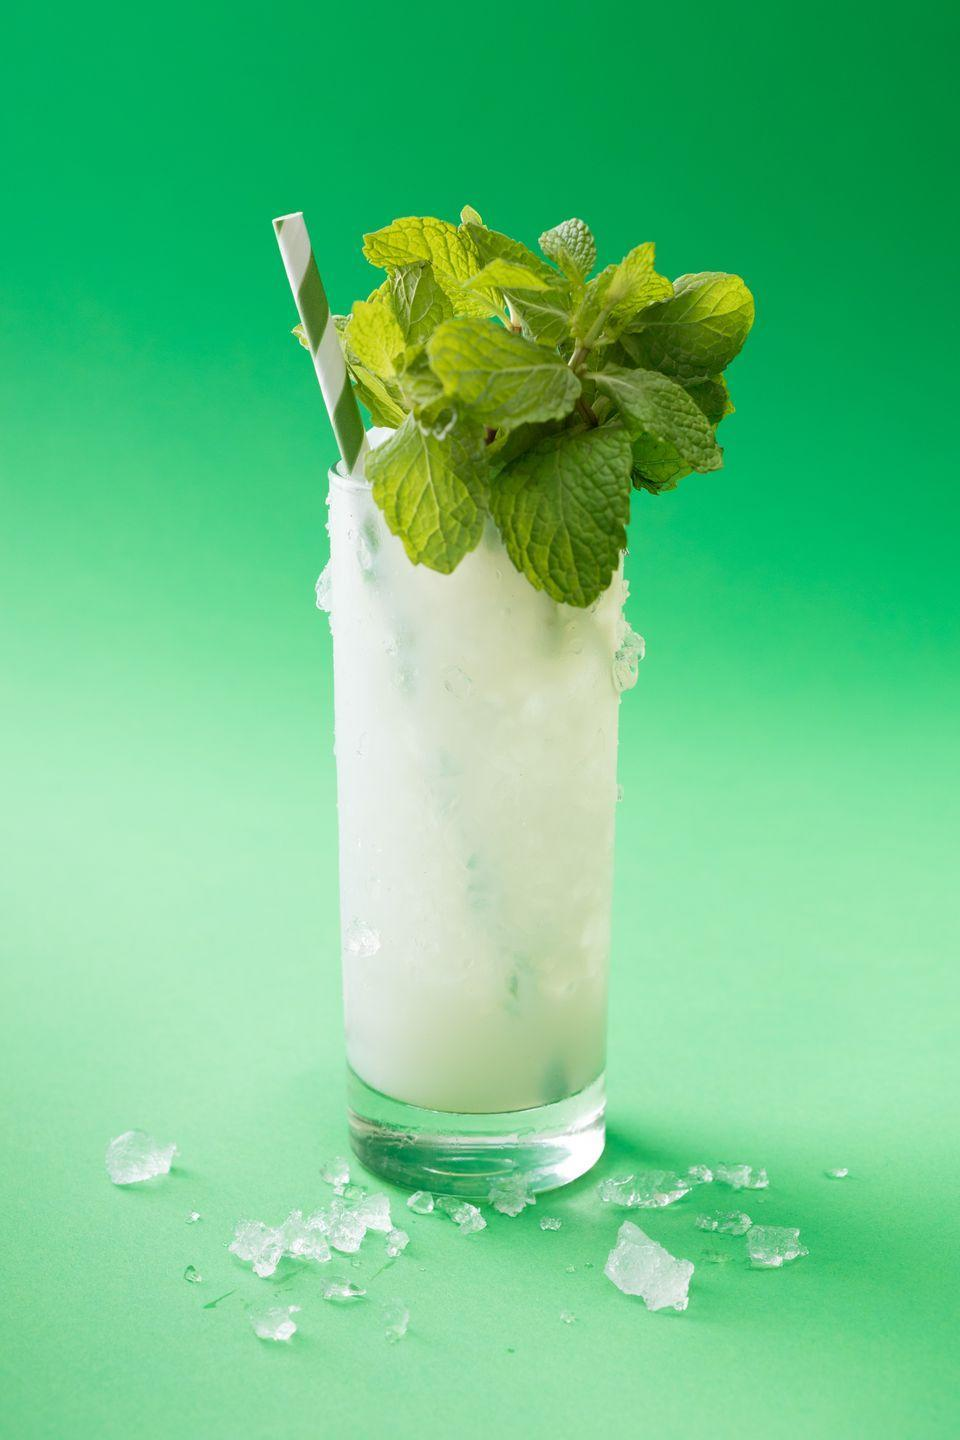 """<p>Mint leaves</p><p>1 1/5 oz Absinthe</p><p>1/2 oz Simple syrup </p><p>4 oz Seltzer</p><p>Ice<br><br>Put 8-10 mint leaves into a tall glass. Gently and briefly, so as not to break or bruise, use the back side of a bar spoon to press the leaves against the sides of the glass, until you can smell the mint. To this, add absinthe and simple syrup. Stir to combine, and add seltzer. Top fully with ice, and garnish with as much mint as your glass will hold, giving the bunches a quick slap between the hands beforehand will release oils on the surface and make the mint more aromatic. Add a straw and enjoy. <br><br><em>Via <a href=""""https://urldefense.proofpoint.com/v2/url?u=https-3A__www.thumbtack.com_ca_san-2Dfrancisco_bartenders_bartending-2Dservices-2Dsharpshooter&d=DwMFaQ&c=B73tqXN8Ec0ocRmZHMCntw&r=XweQJN9arlX6KOhqQM3zdtqnpQ6pOUqX8MnbsCYM2lI&m=AH5fjrkEsOlZzZK8HOSwYzV5HpJijwmqsYm-ByzV0VA&s=L-udC9s_u6GmclBphqV3FPJu6sVadMlvCou3nmDmsqM&e="""" rel=""""nofollow noopener"""" target=""""_blank"""" data-ylk=""""slk:Thumbtack Pro Bartender"""" class=""""link rapid-noclick-resp"""">Thumbtack Pro Bartender </a><a href=""""https://www.sharpshootersf.com/"""" rel=""""nofollow noopener"""" target=""""_blank"""" data-ylk=""""slk:Ian McCarthy"""" class=""""link rapid-noclick-resp"""">Ian McCarthy </a></em><br></p>"""